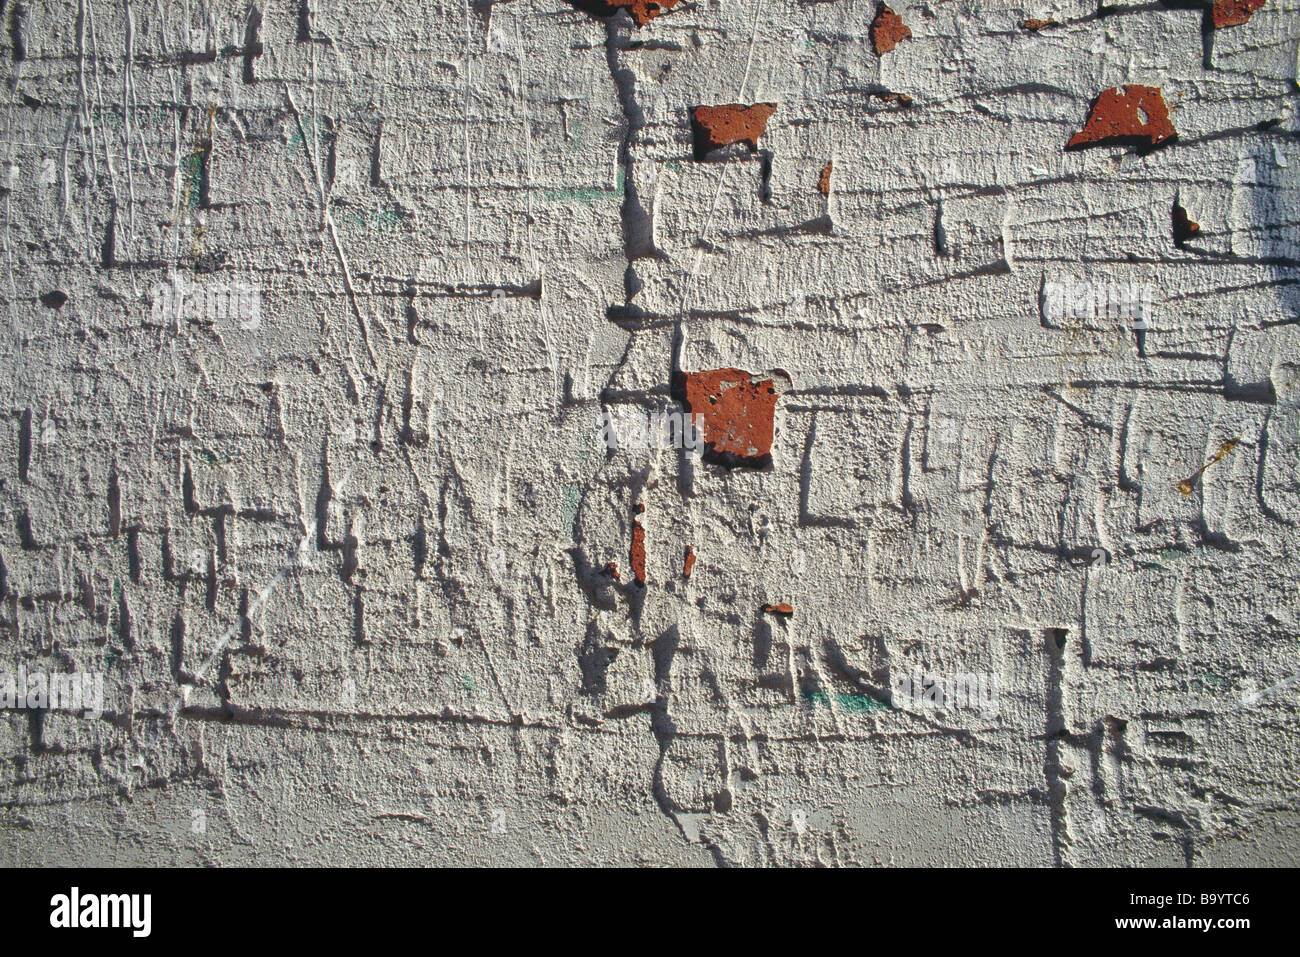 Textured surface - Stock Image